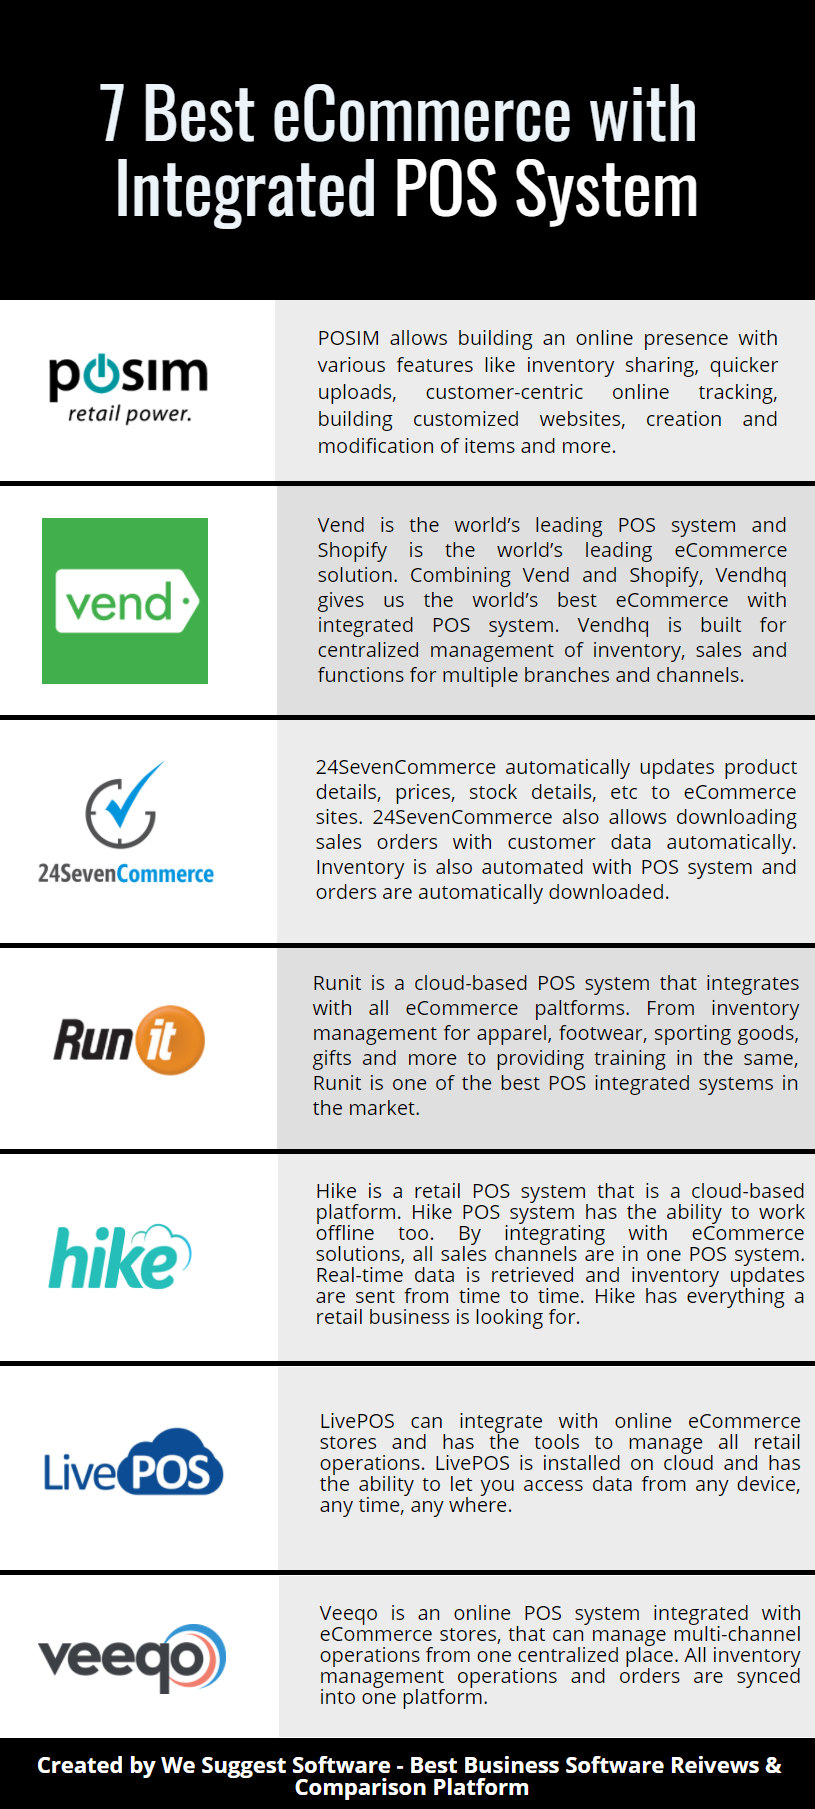 7 Best Ecommerce With Integrated Pos System Software